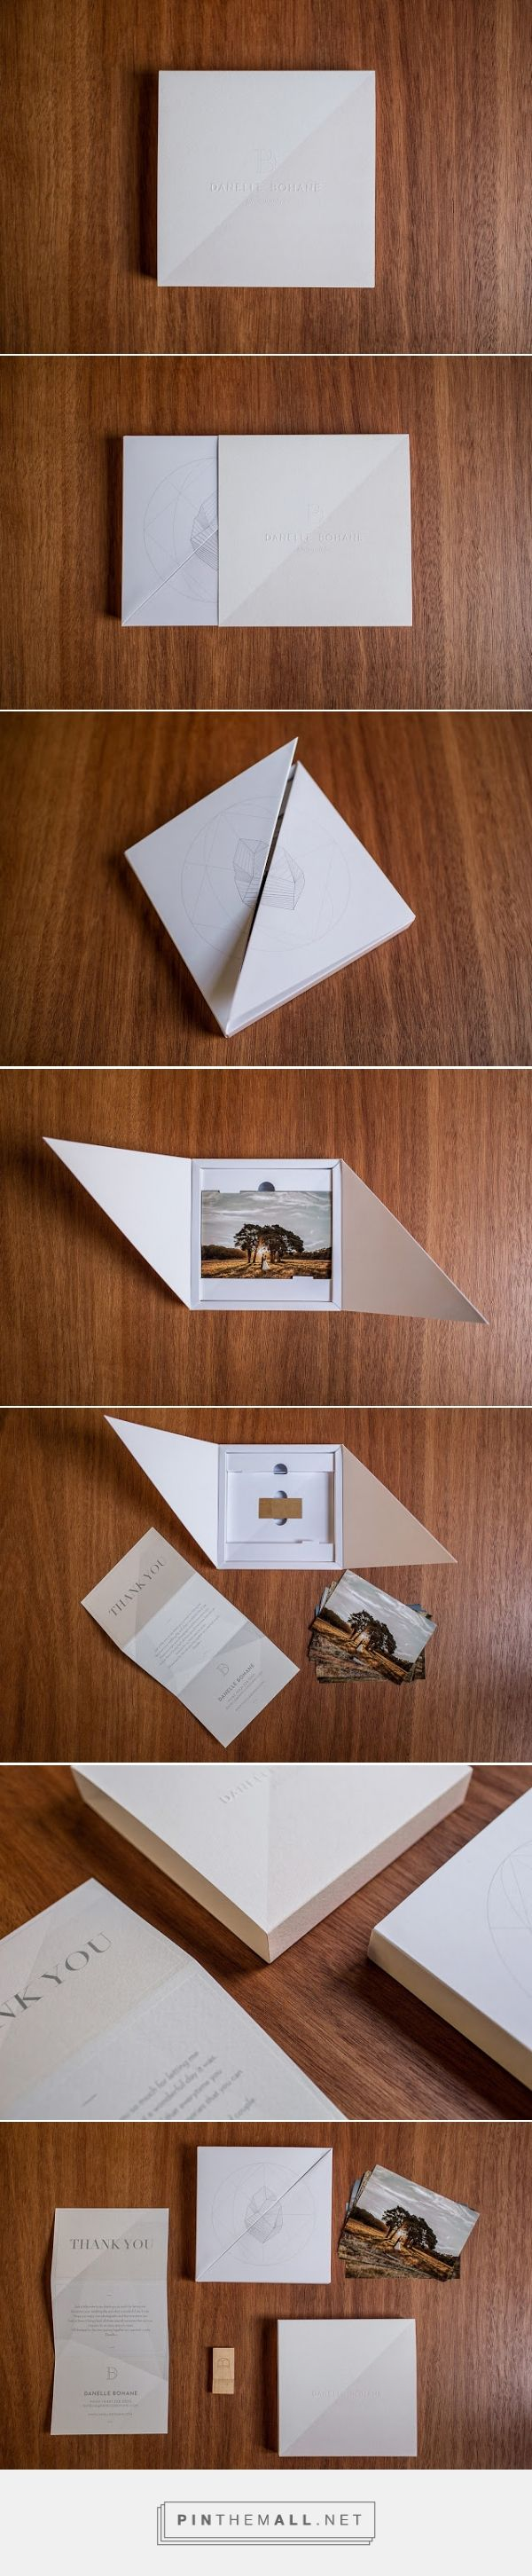 Danelle Bohane - Wedding Package on  Packaging of the World - Creative Package Design Gallery - http://www.packagingoftheworld.com/2015/07/danelle-bohane-wedding-package.html